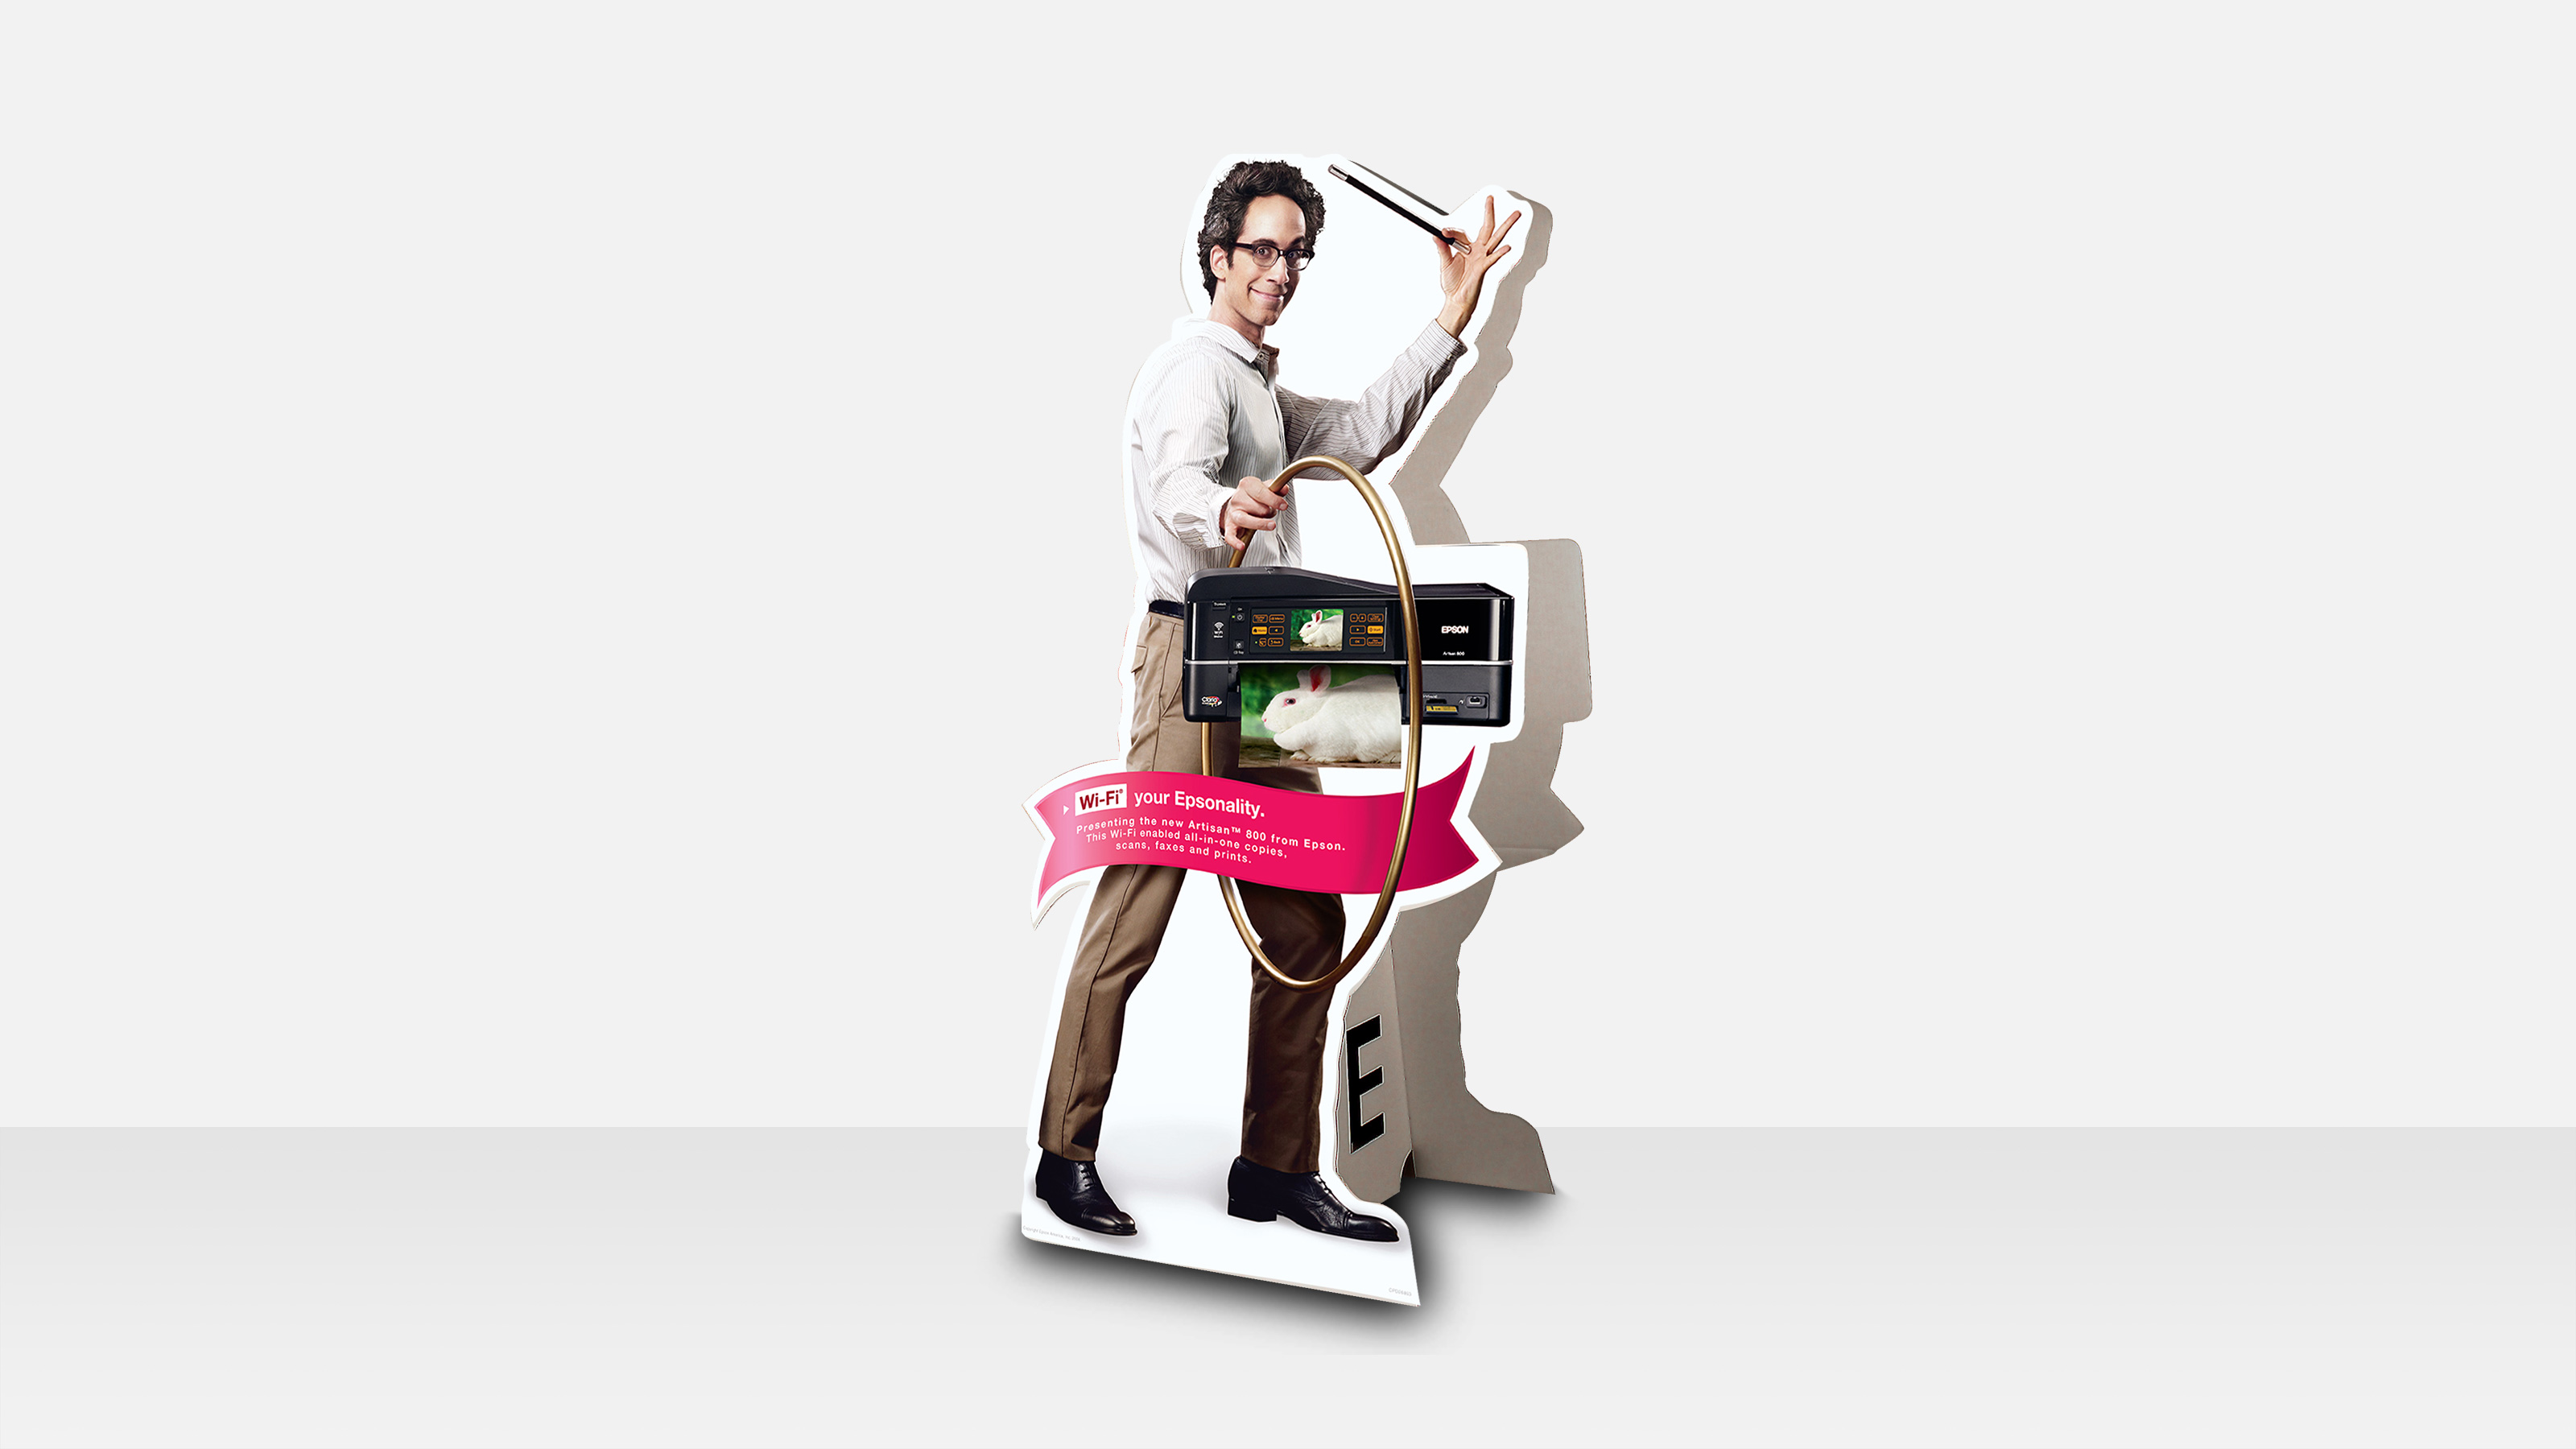 epson point of purchase marketing stand with a man and a cordless printer